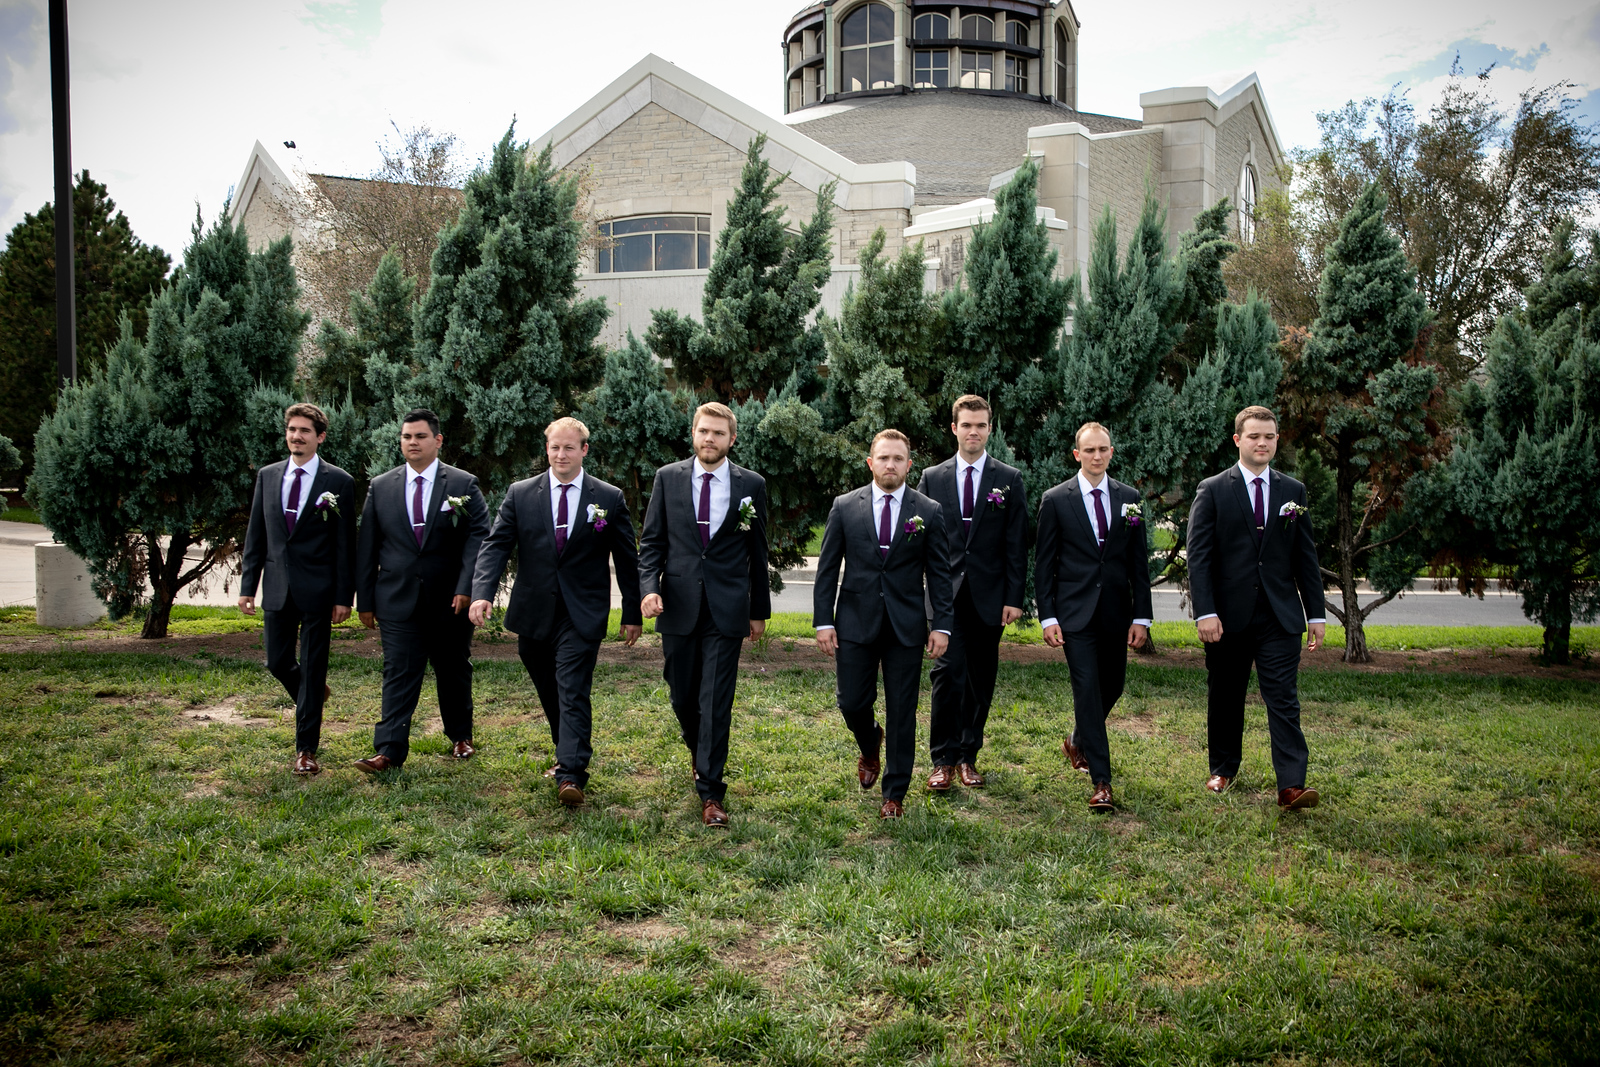 seven groomsmen and a groom walking through a field in front of a church with a serious look